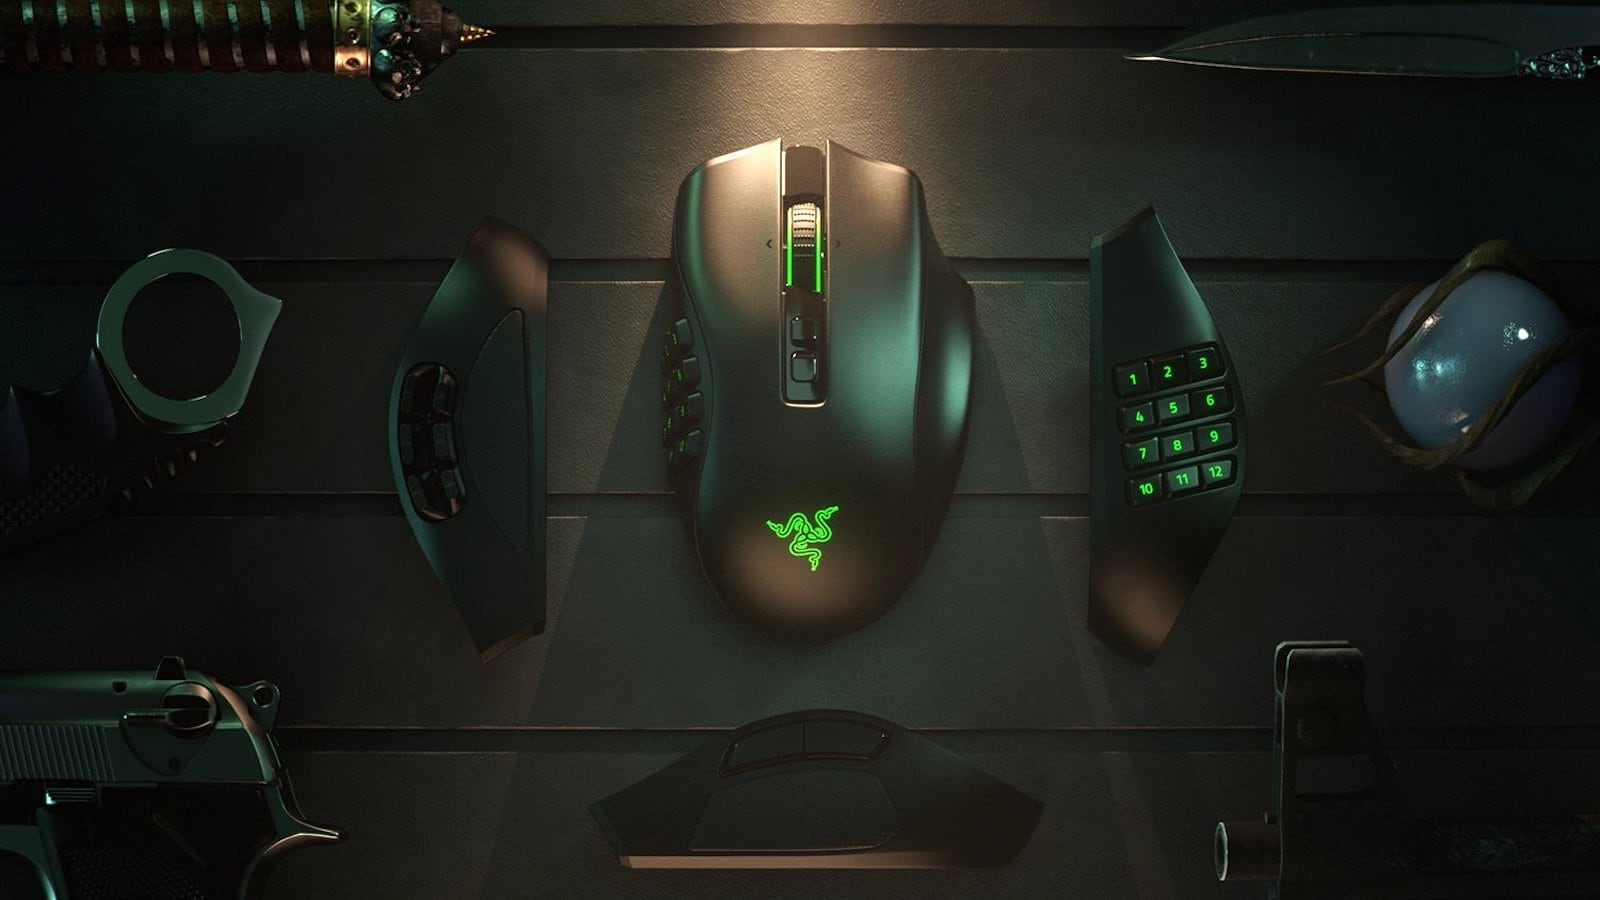 Razer Naga Pro gaming mouse has swappable button plates with so many options